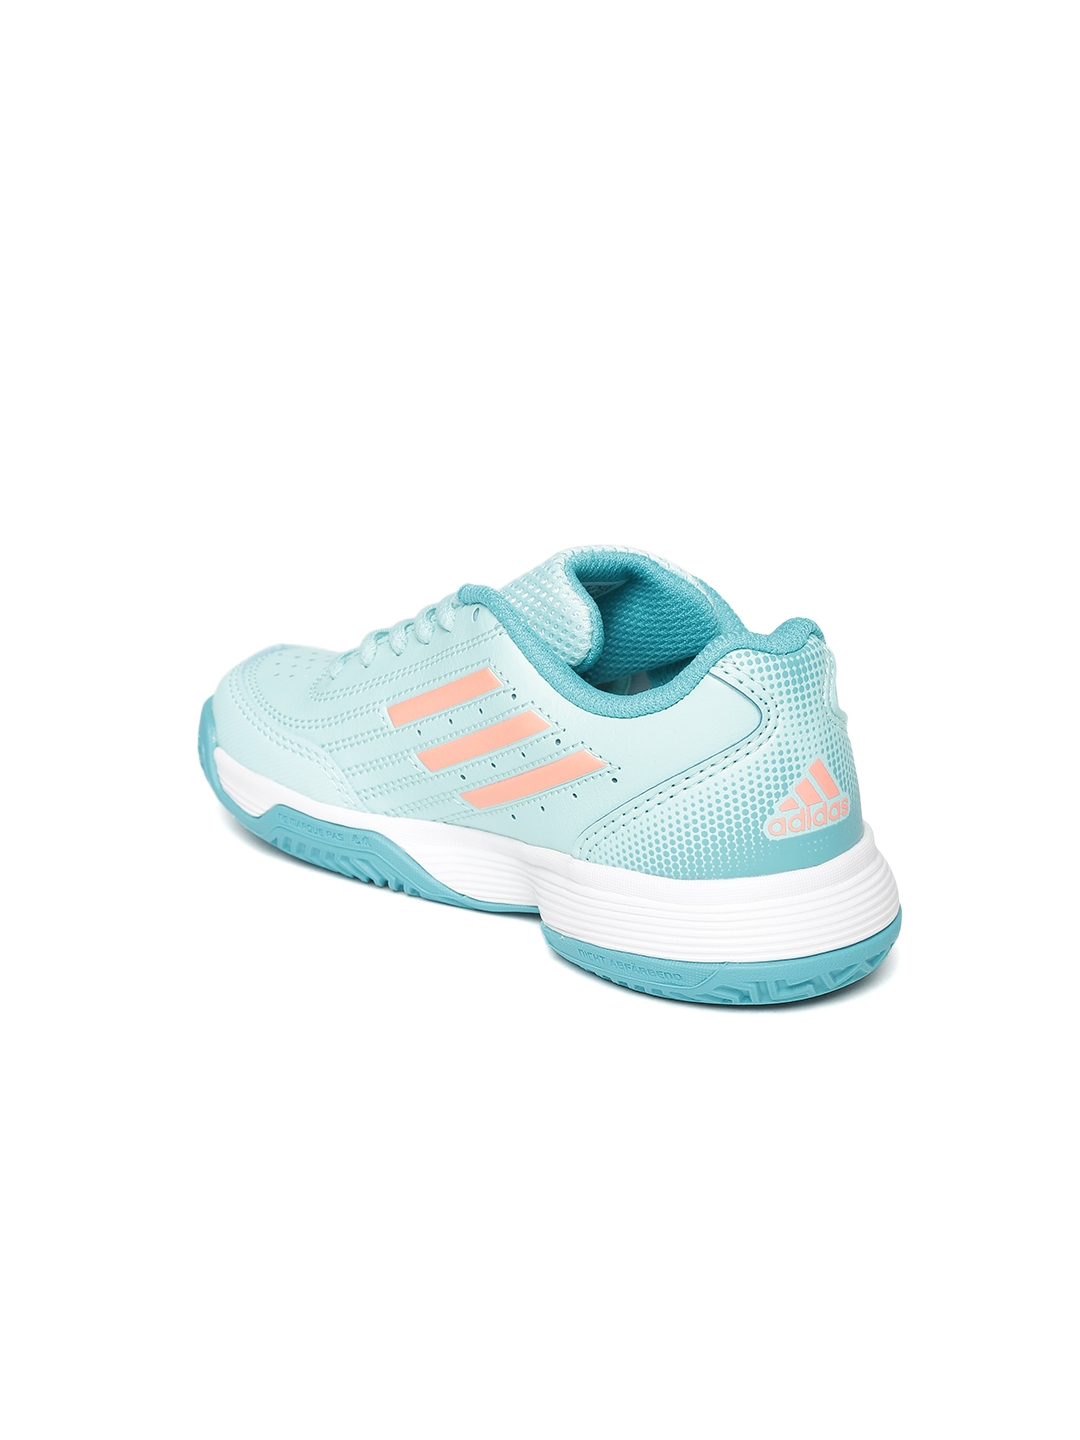 ad8a2ae772a9d ADIDAS Kids Sea Green Sonic Attack Tennis Shoes. This product is already at  its best price